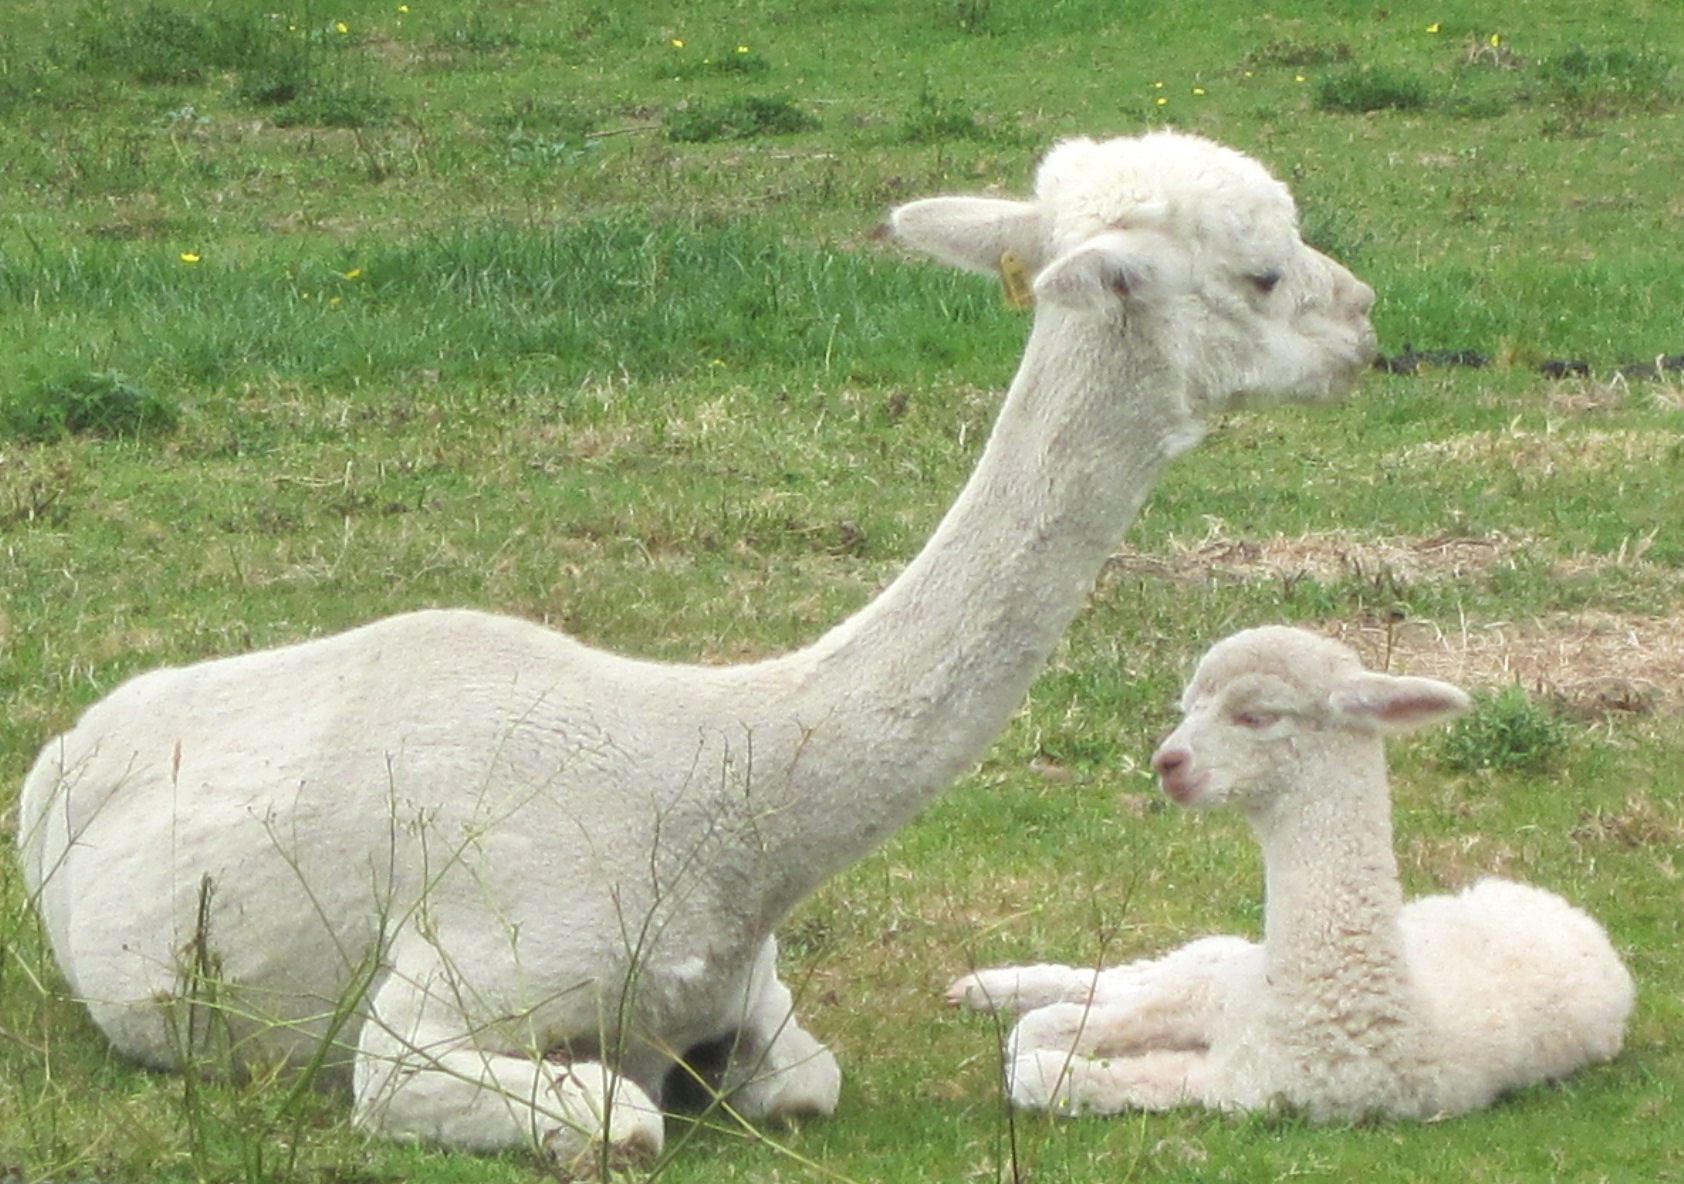 Our new cria, Declan, with mother Cherrie